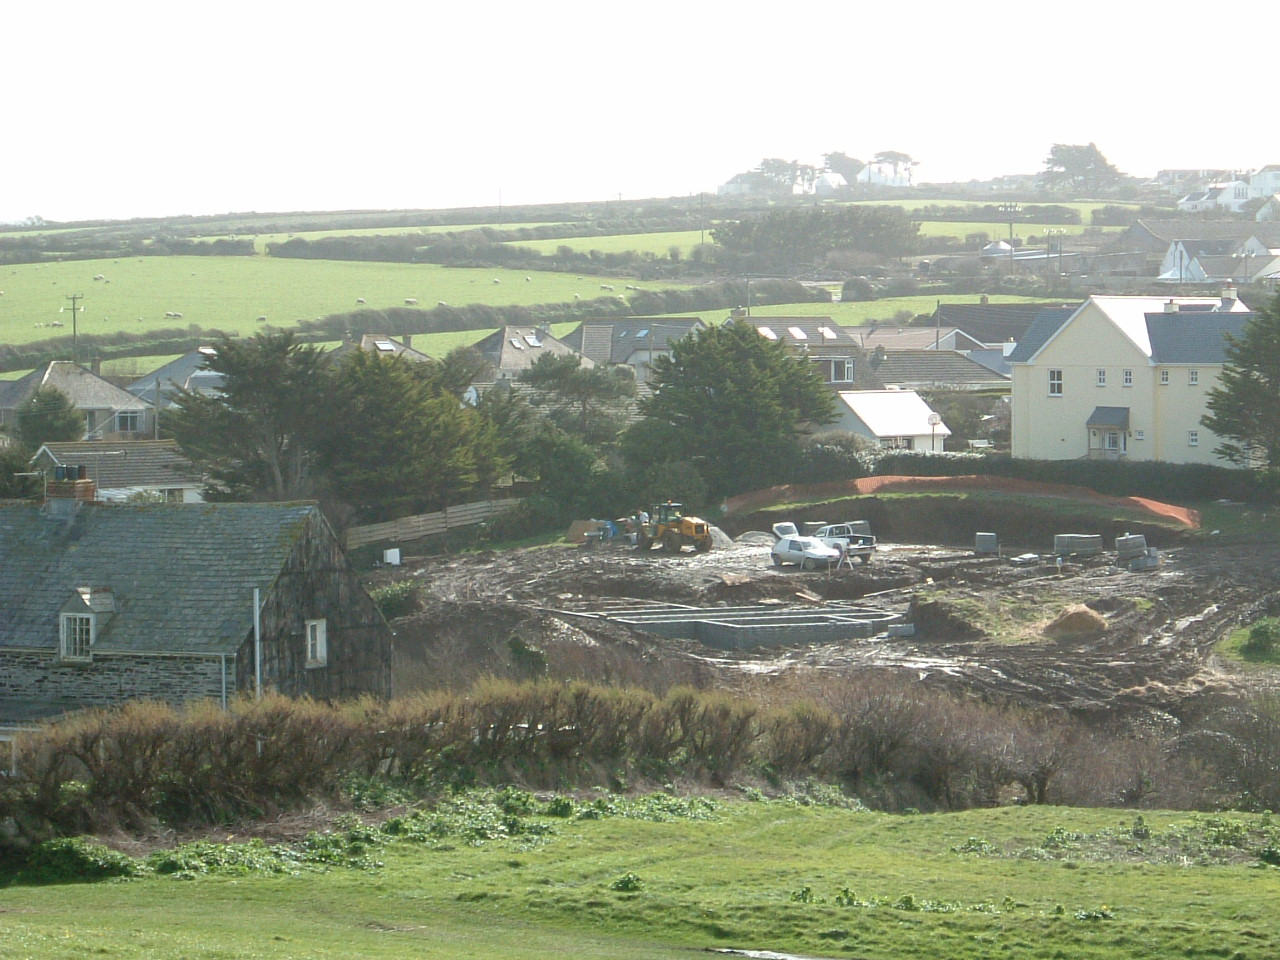 Constructing the foundations